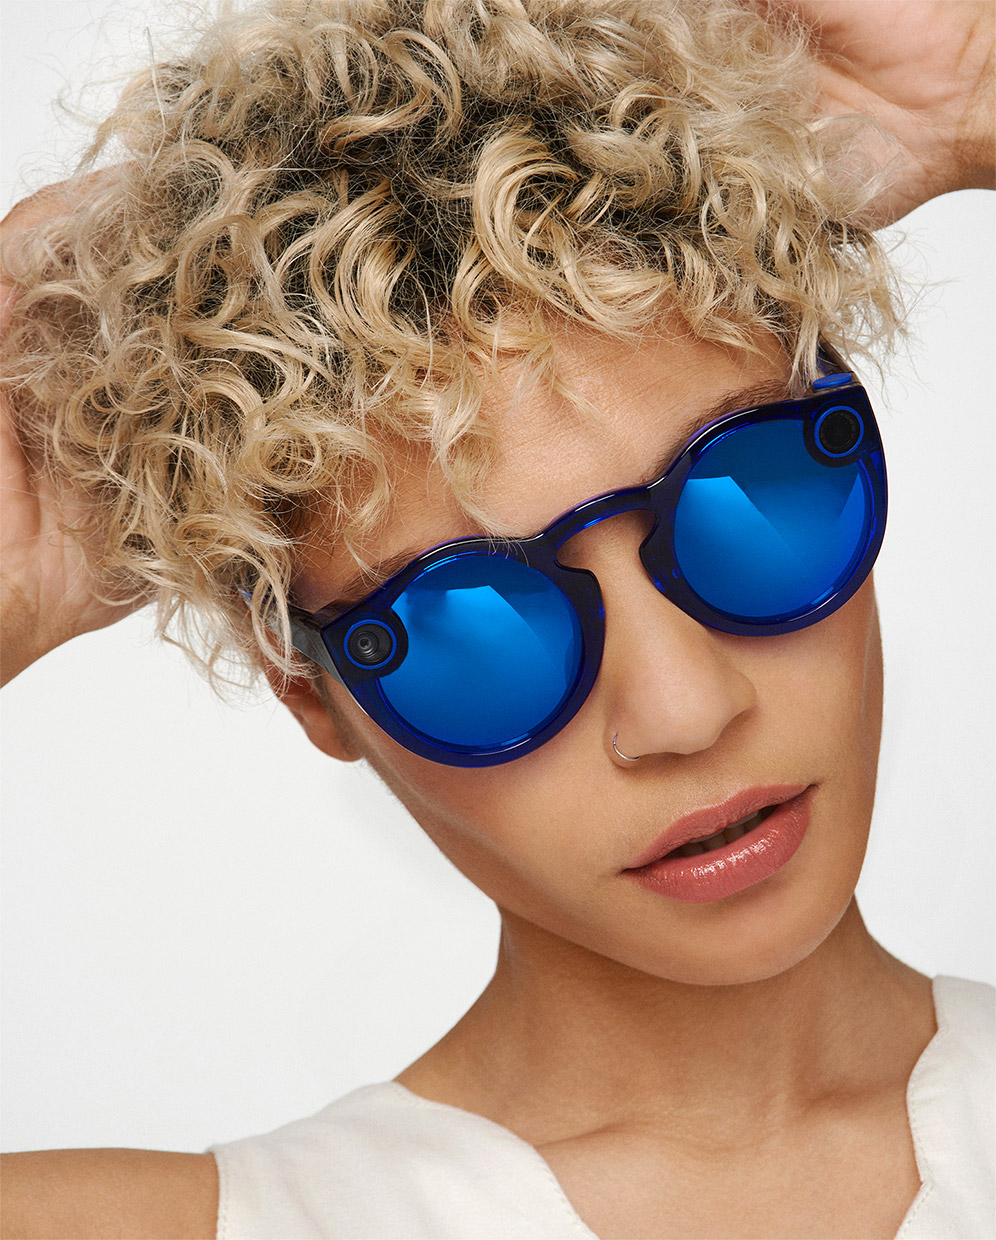 917984f36c9 Snapchat Spectacles V2 Available Now